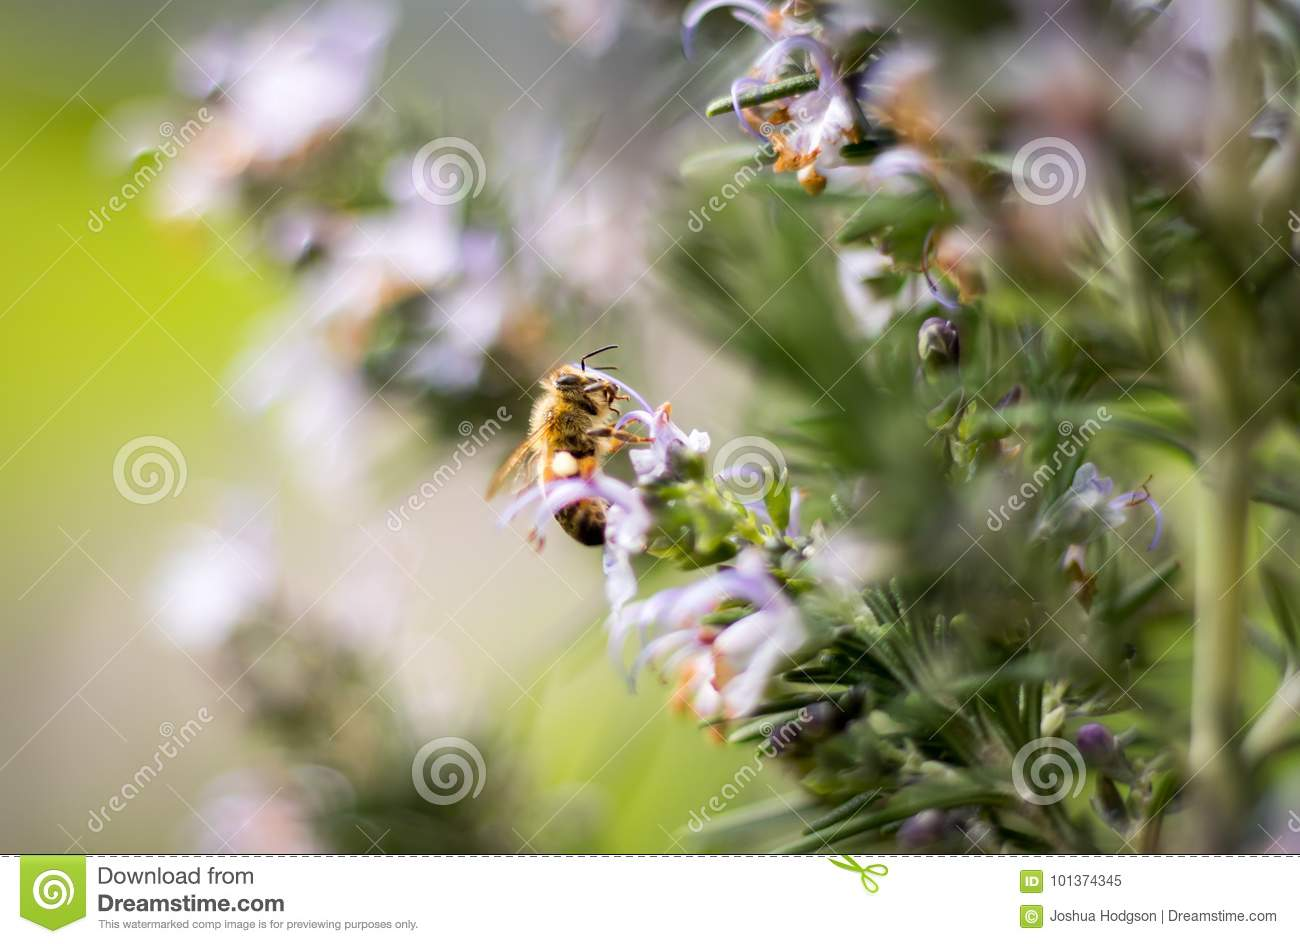 Honey Bee On Rosemary Bush stock image  Image of herb - 101374345